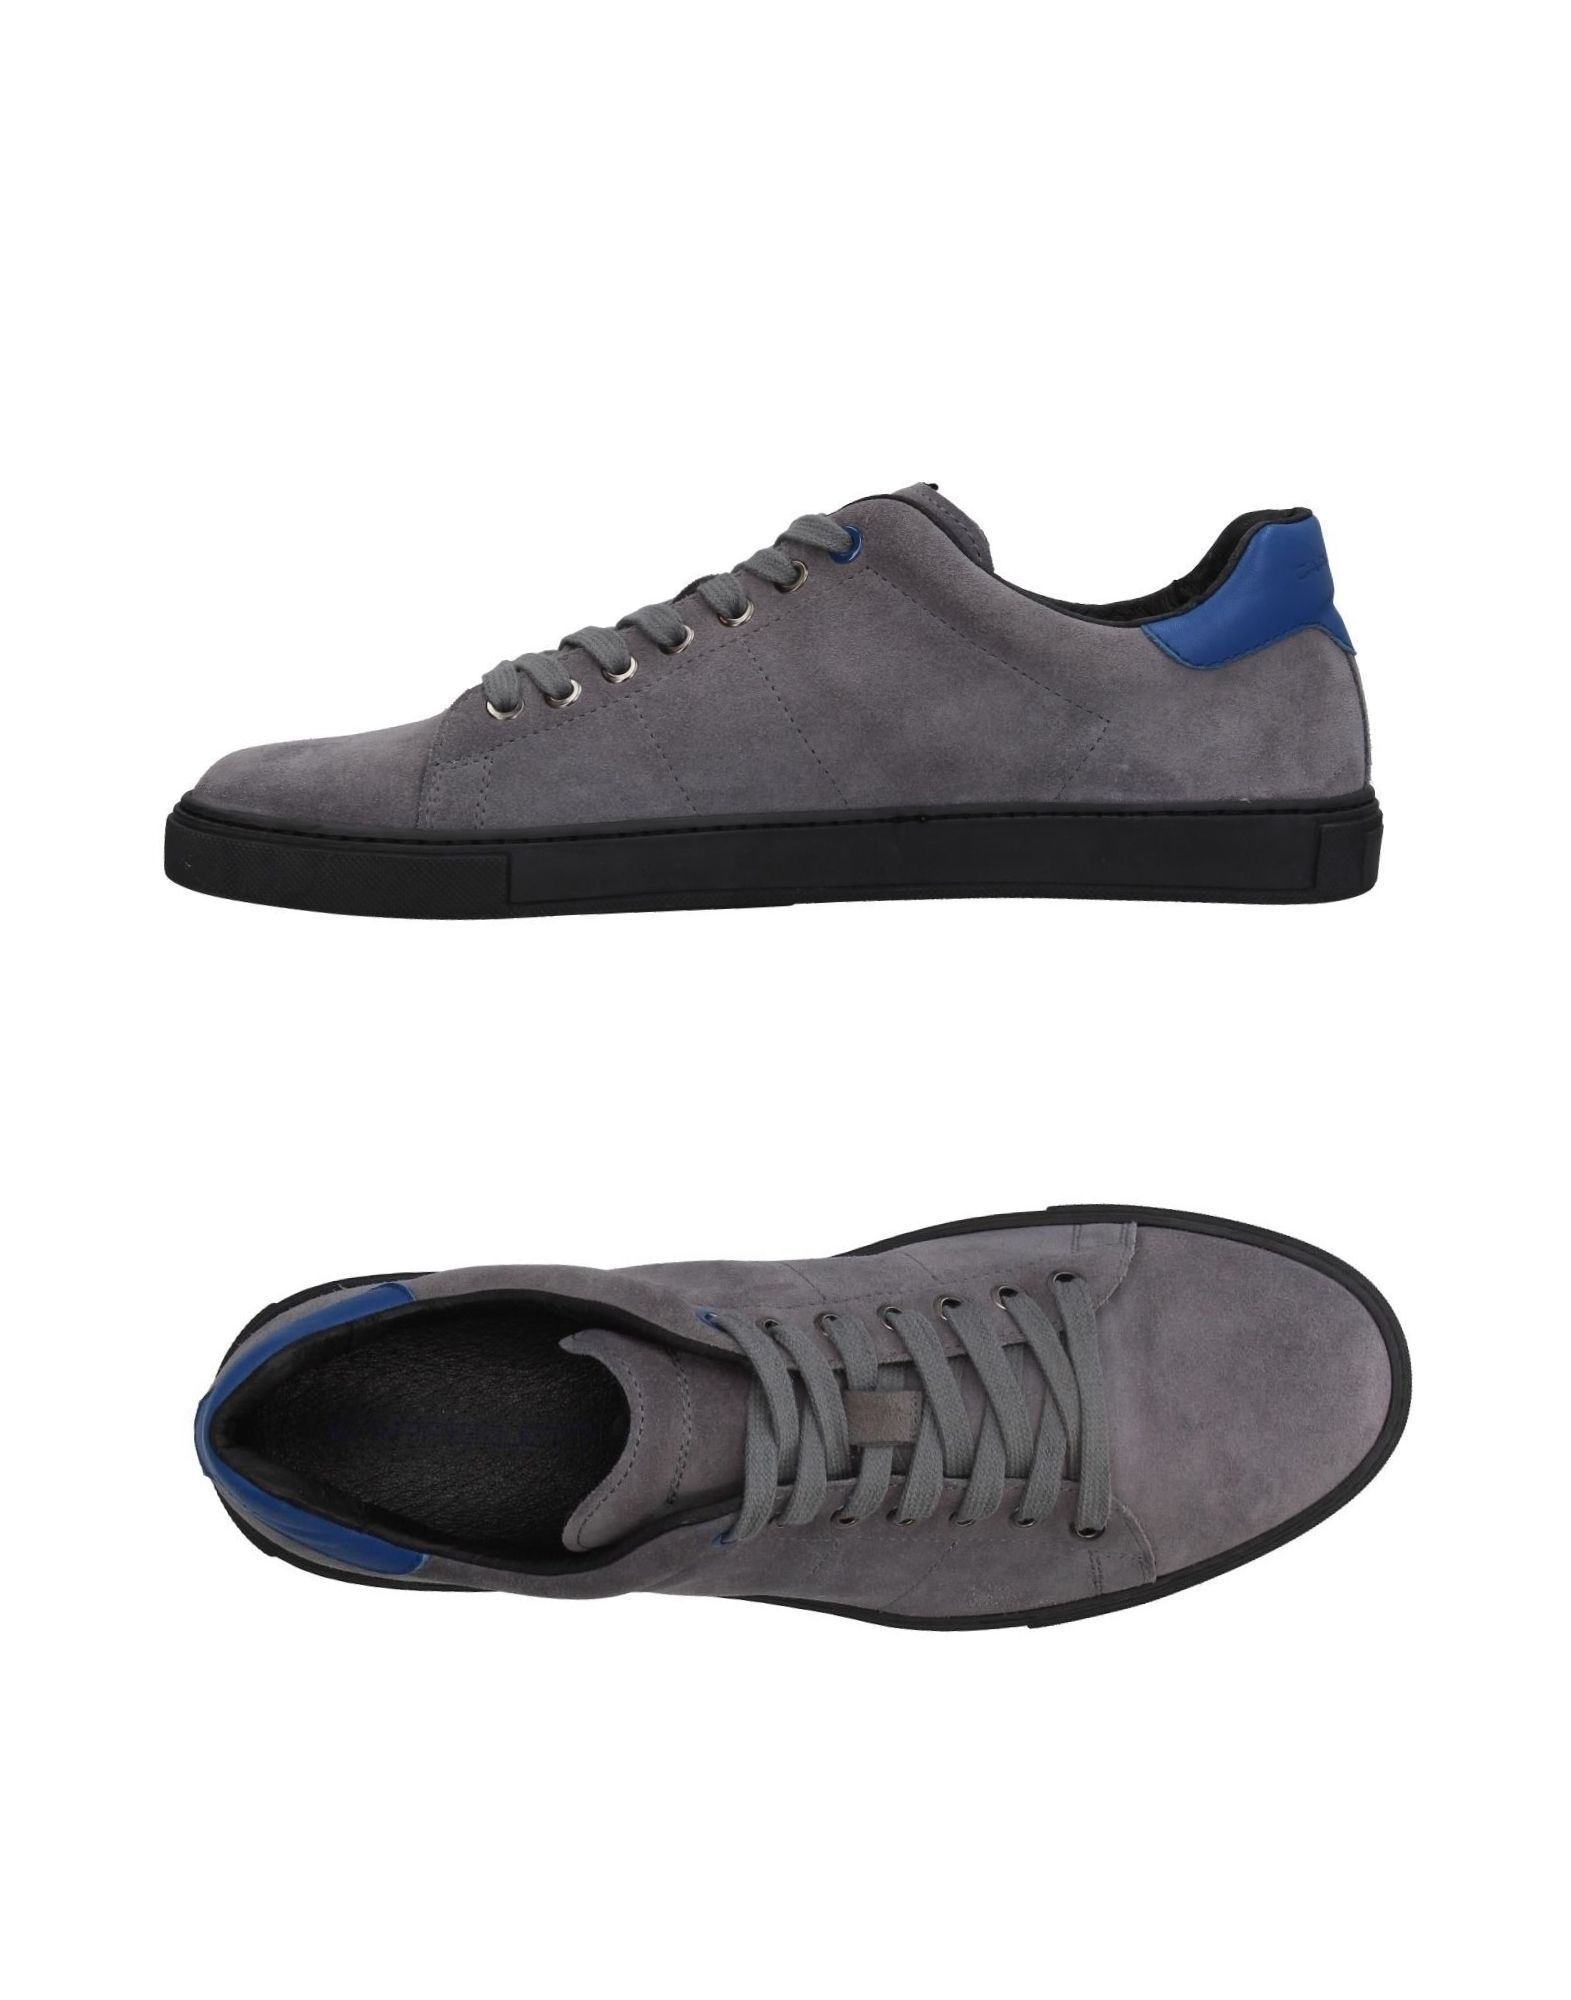 FOOTWEAR - Low-tops & sneakers Cappelletti For Nice Cheap Online Amazing Cheap New 80Oi88